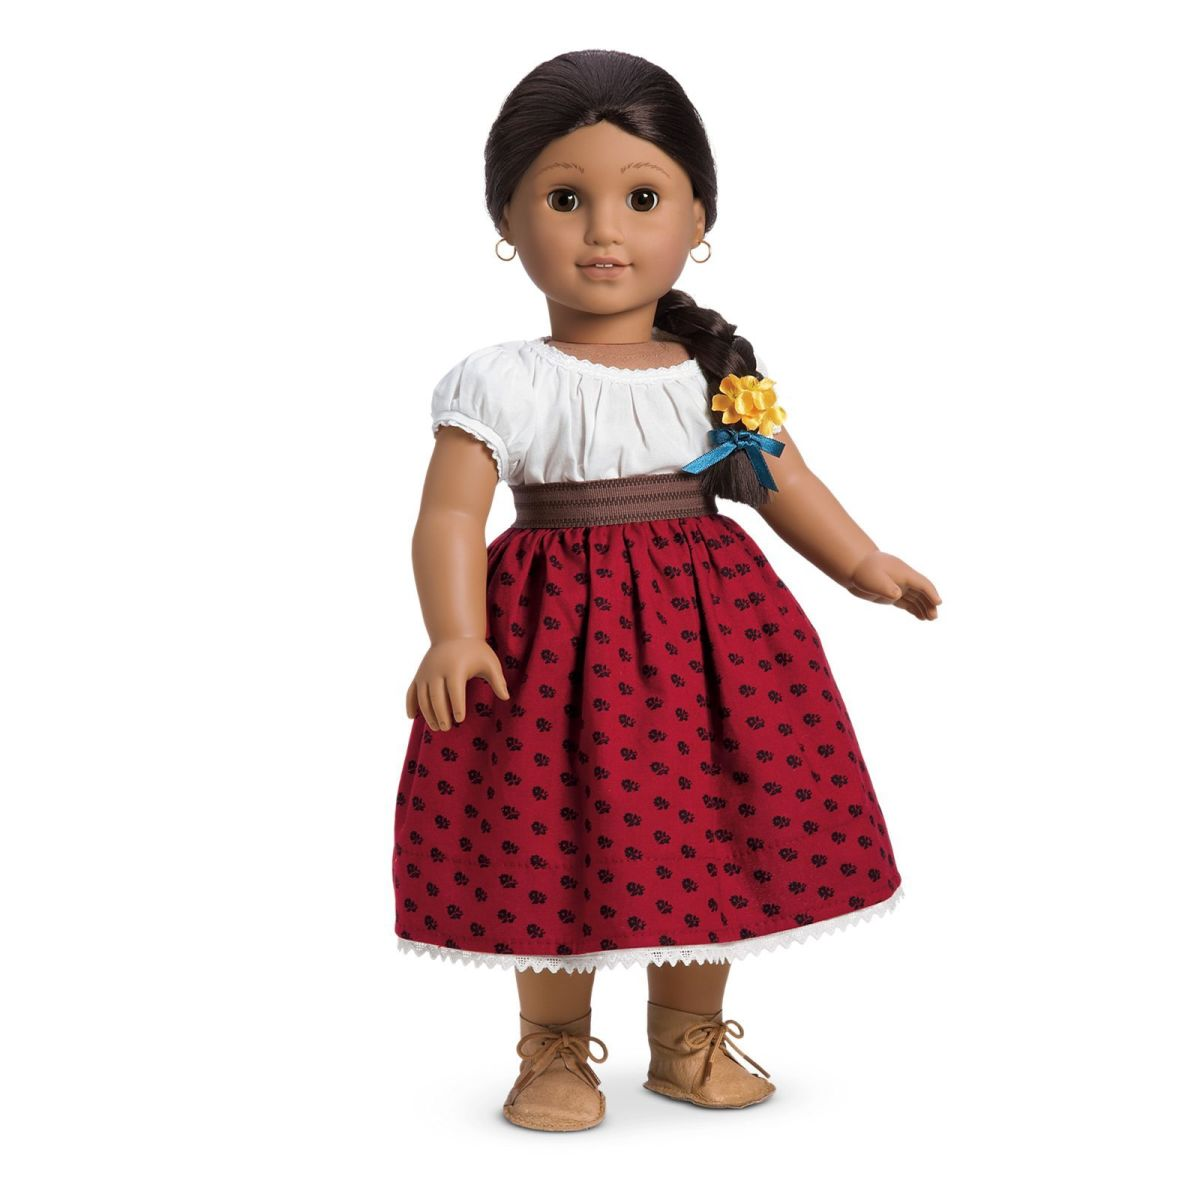 The Josefina doll, dressed in her original Meet Outfit